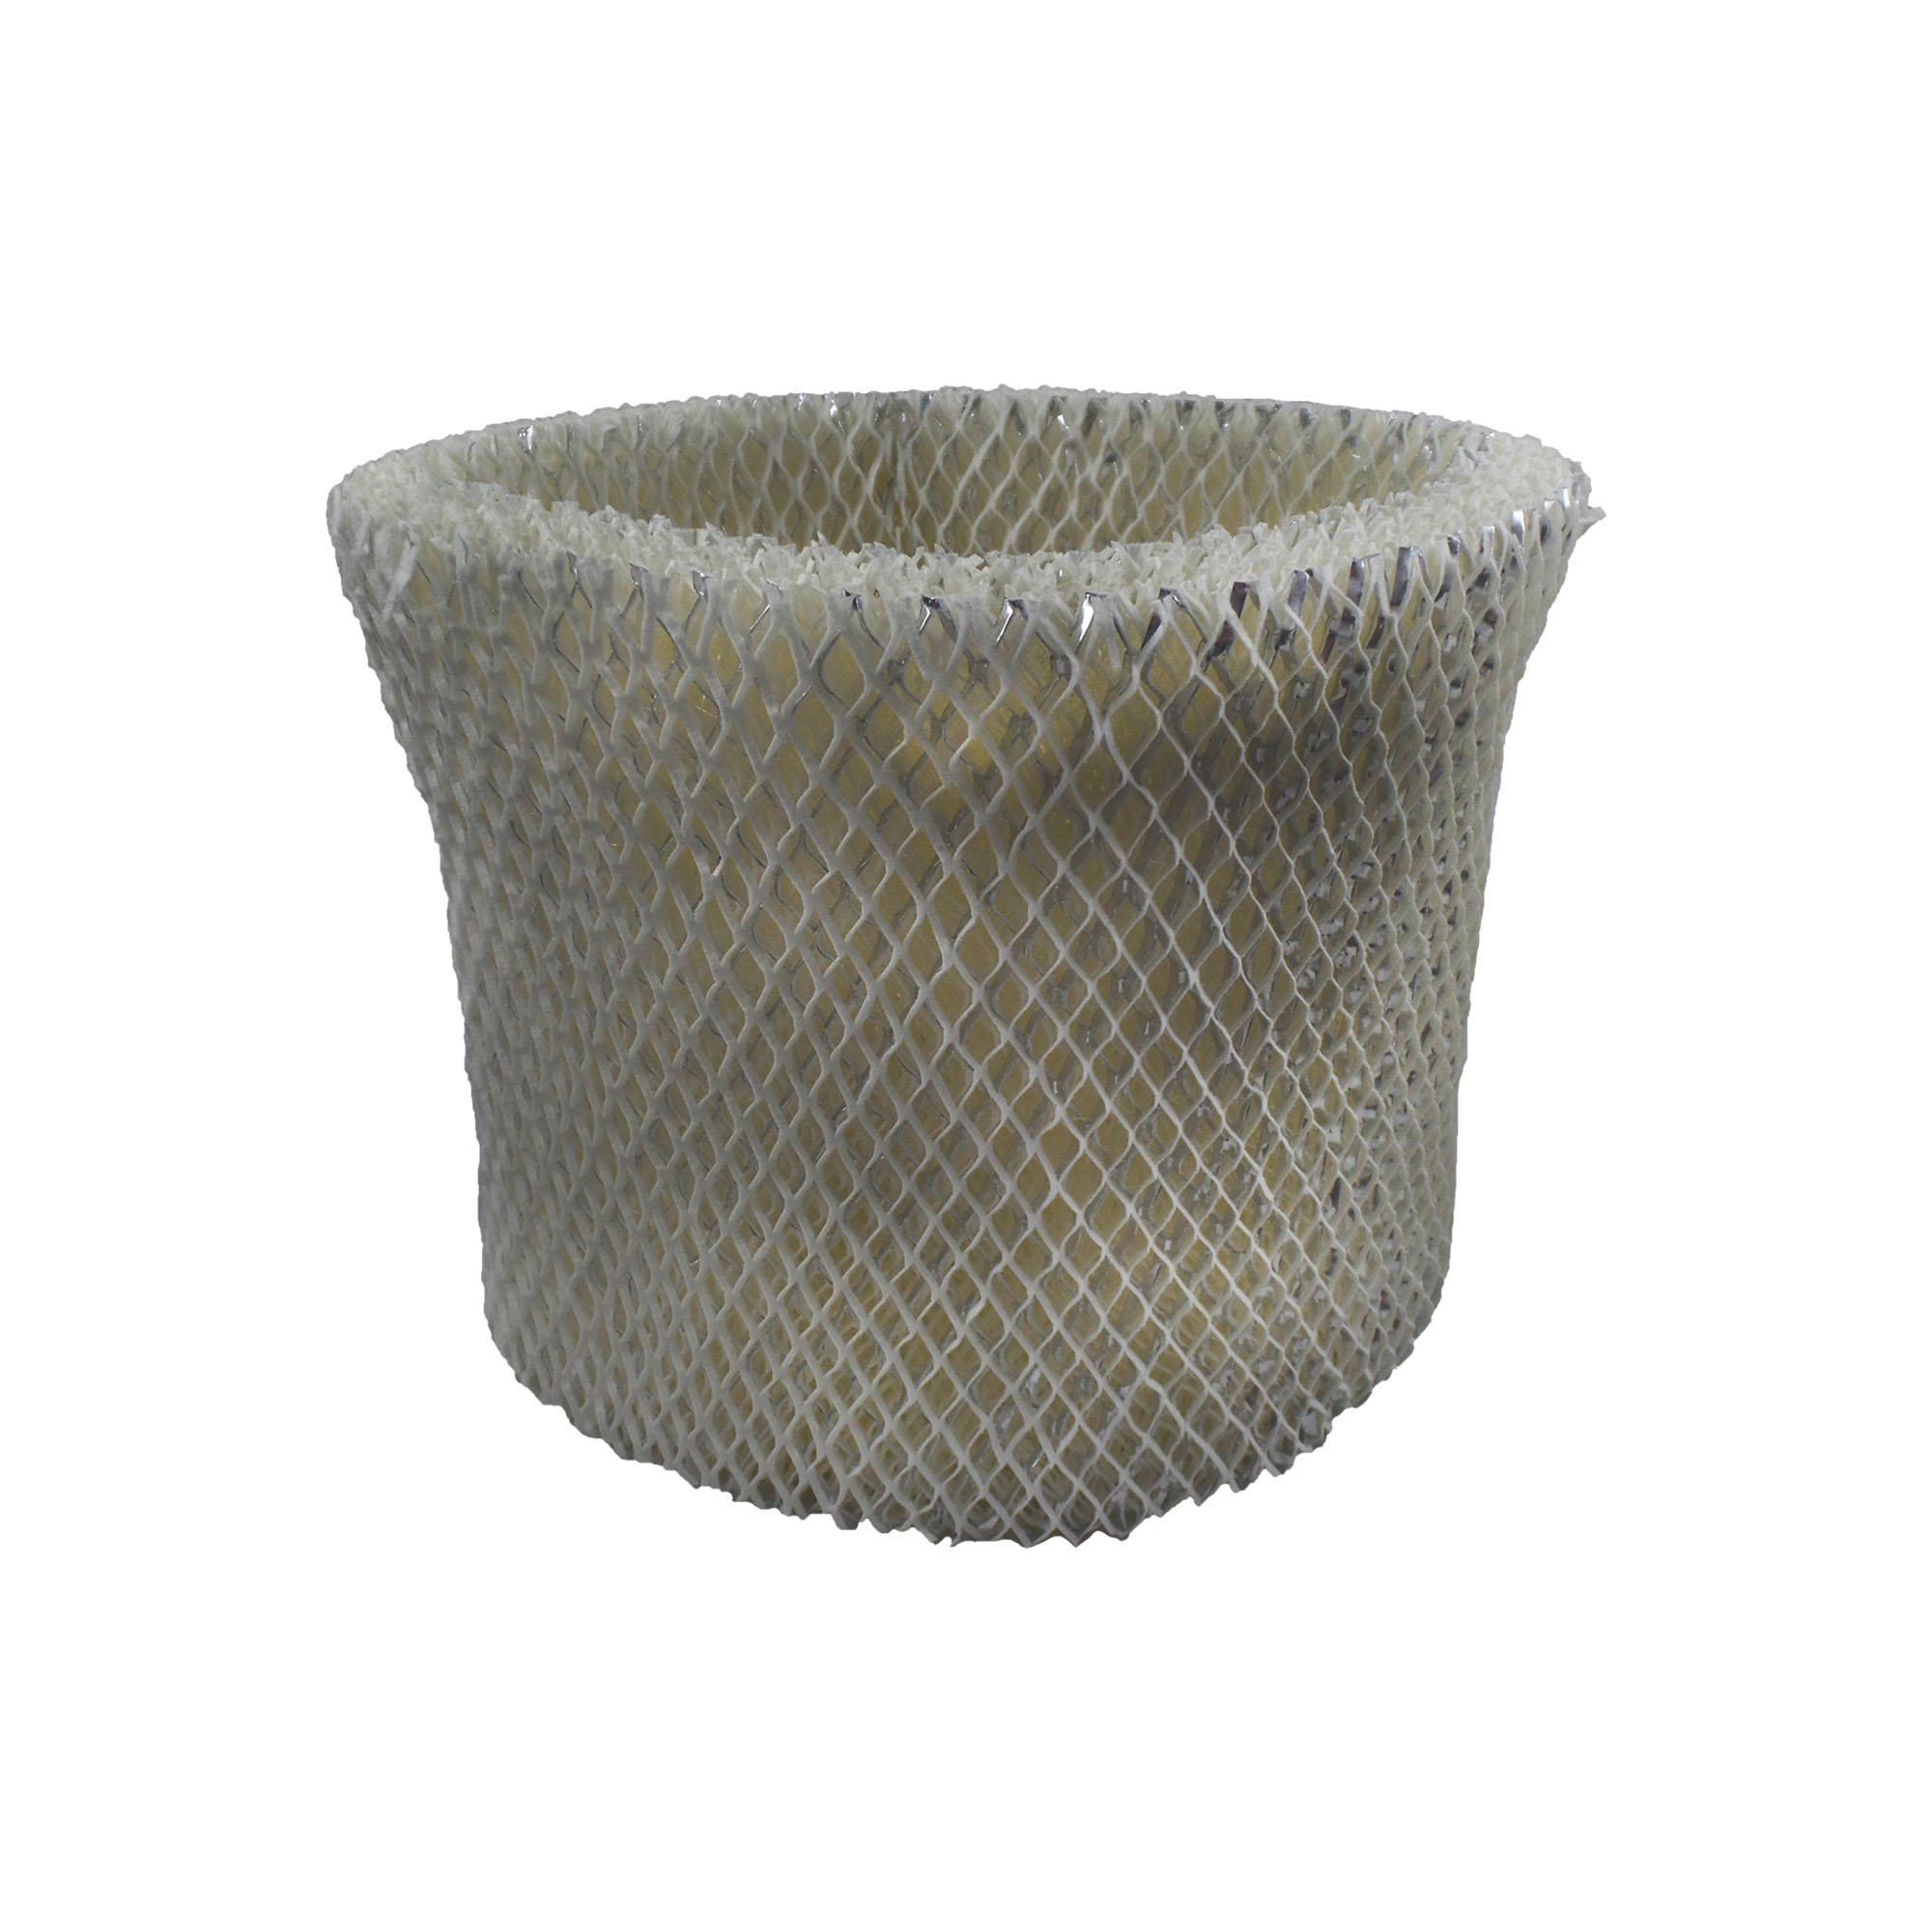 Air Filter Factory Compatible Replacement For Holmes HM1888, HM1889, HM1895, HM1975, HM-1975, HM2059, HM-2059, HM2060, HM2060W, HM-2060-W Humidifier Filter by Air Filter Factory